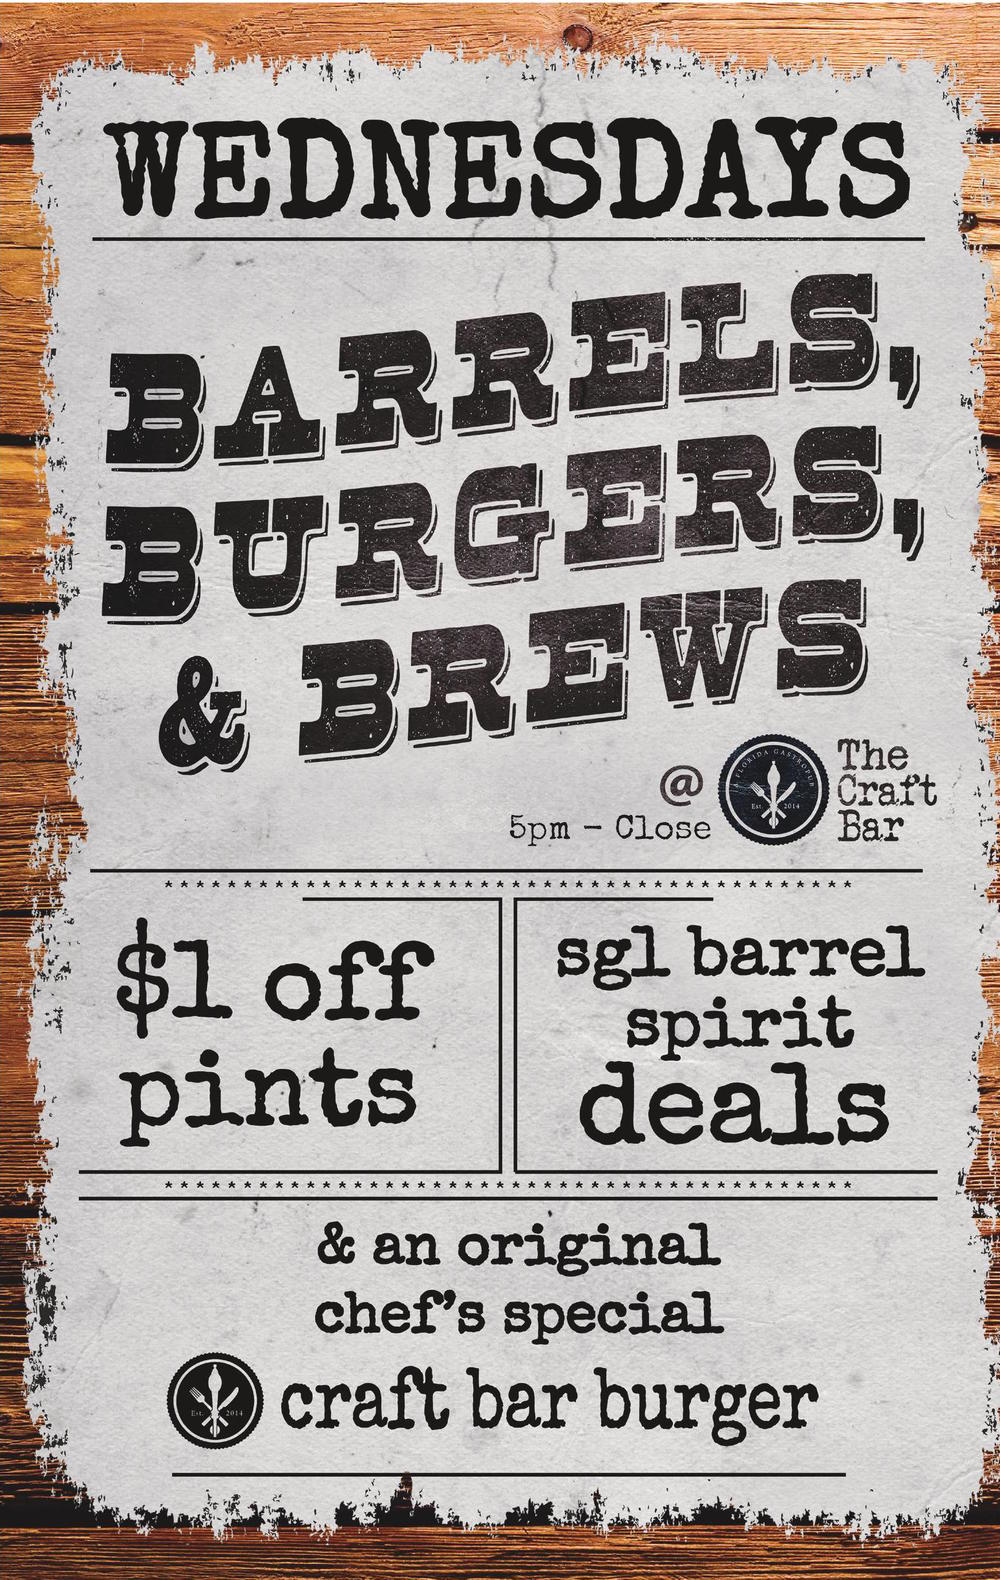 barrels burgers and brews 2 up flyer_06_14_16-page-002.jpg